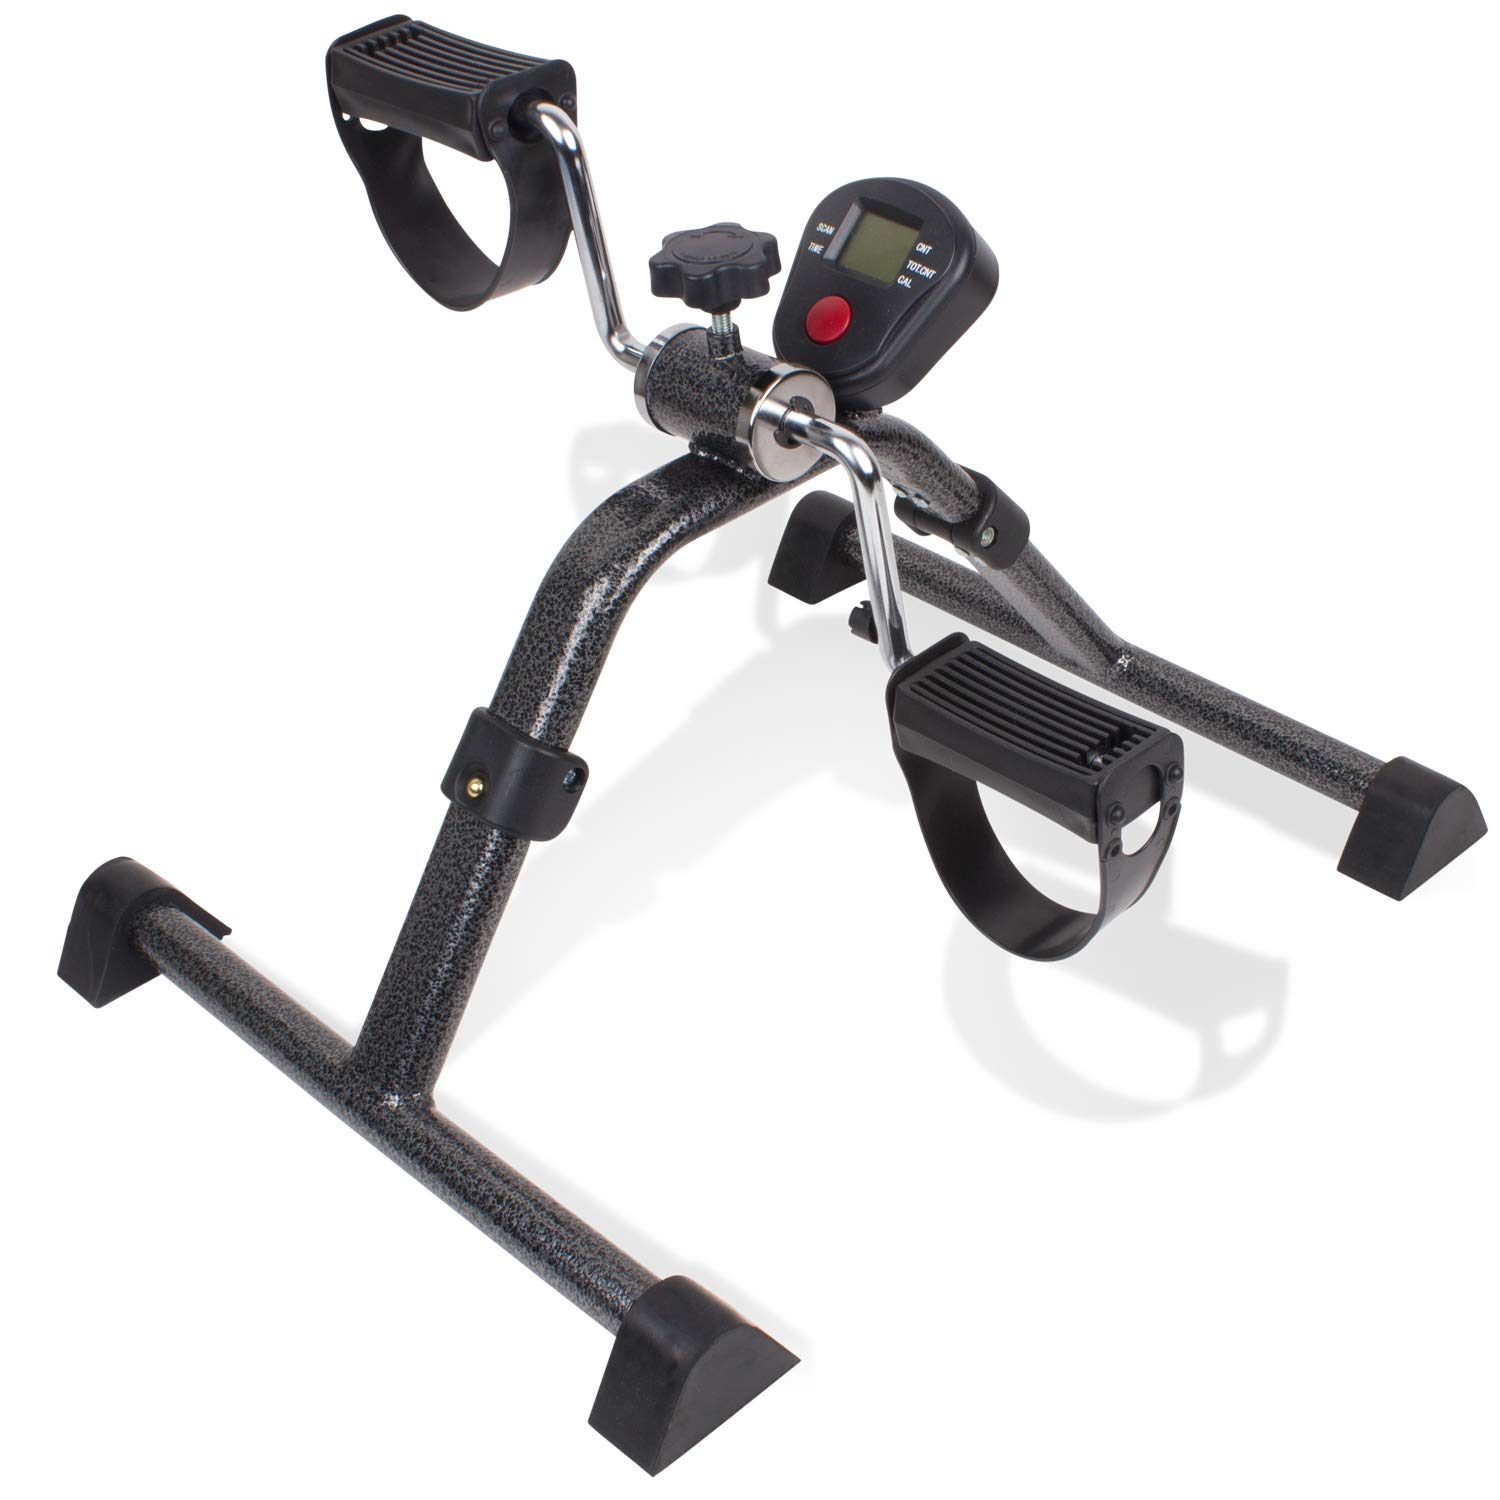 Carex Foldable Under Desk Exercise Bike - Desk Bike with Digital Display for Arms and Legs - Great for Elderly, Seniors, Disabled or Office Use by Carex Health Brands